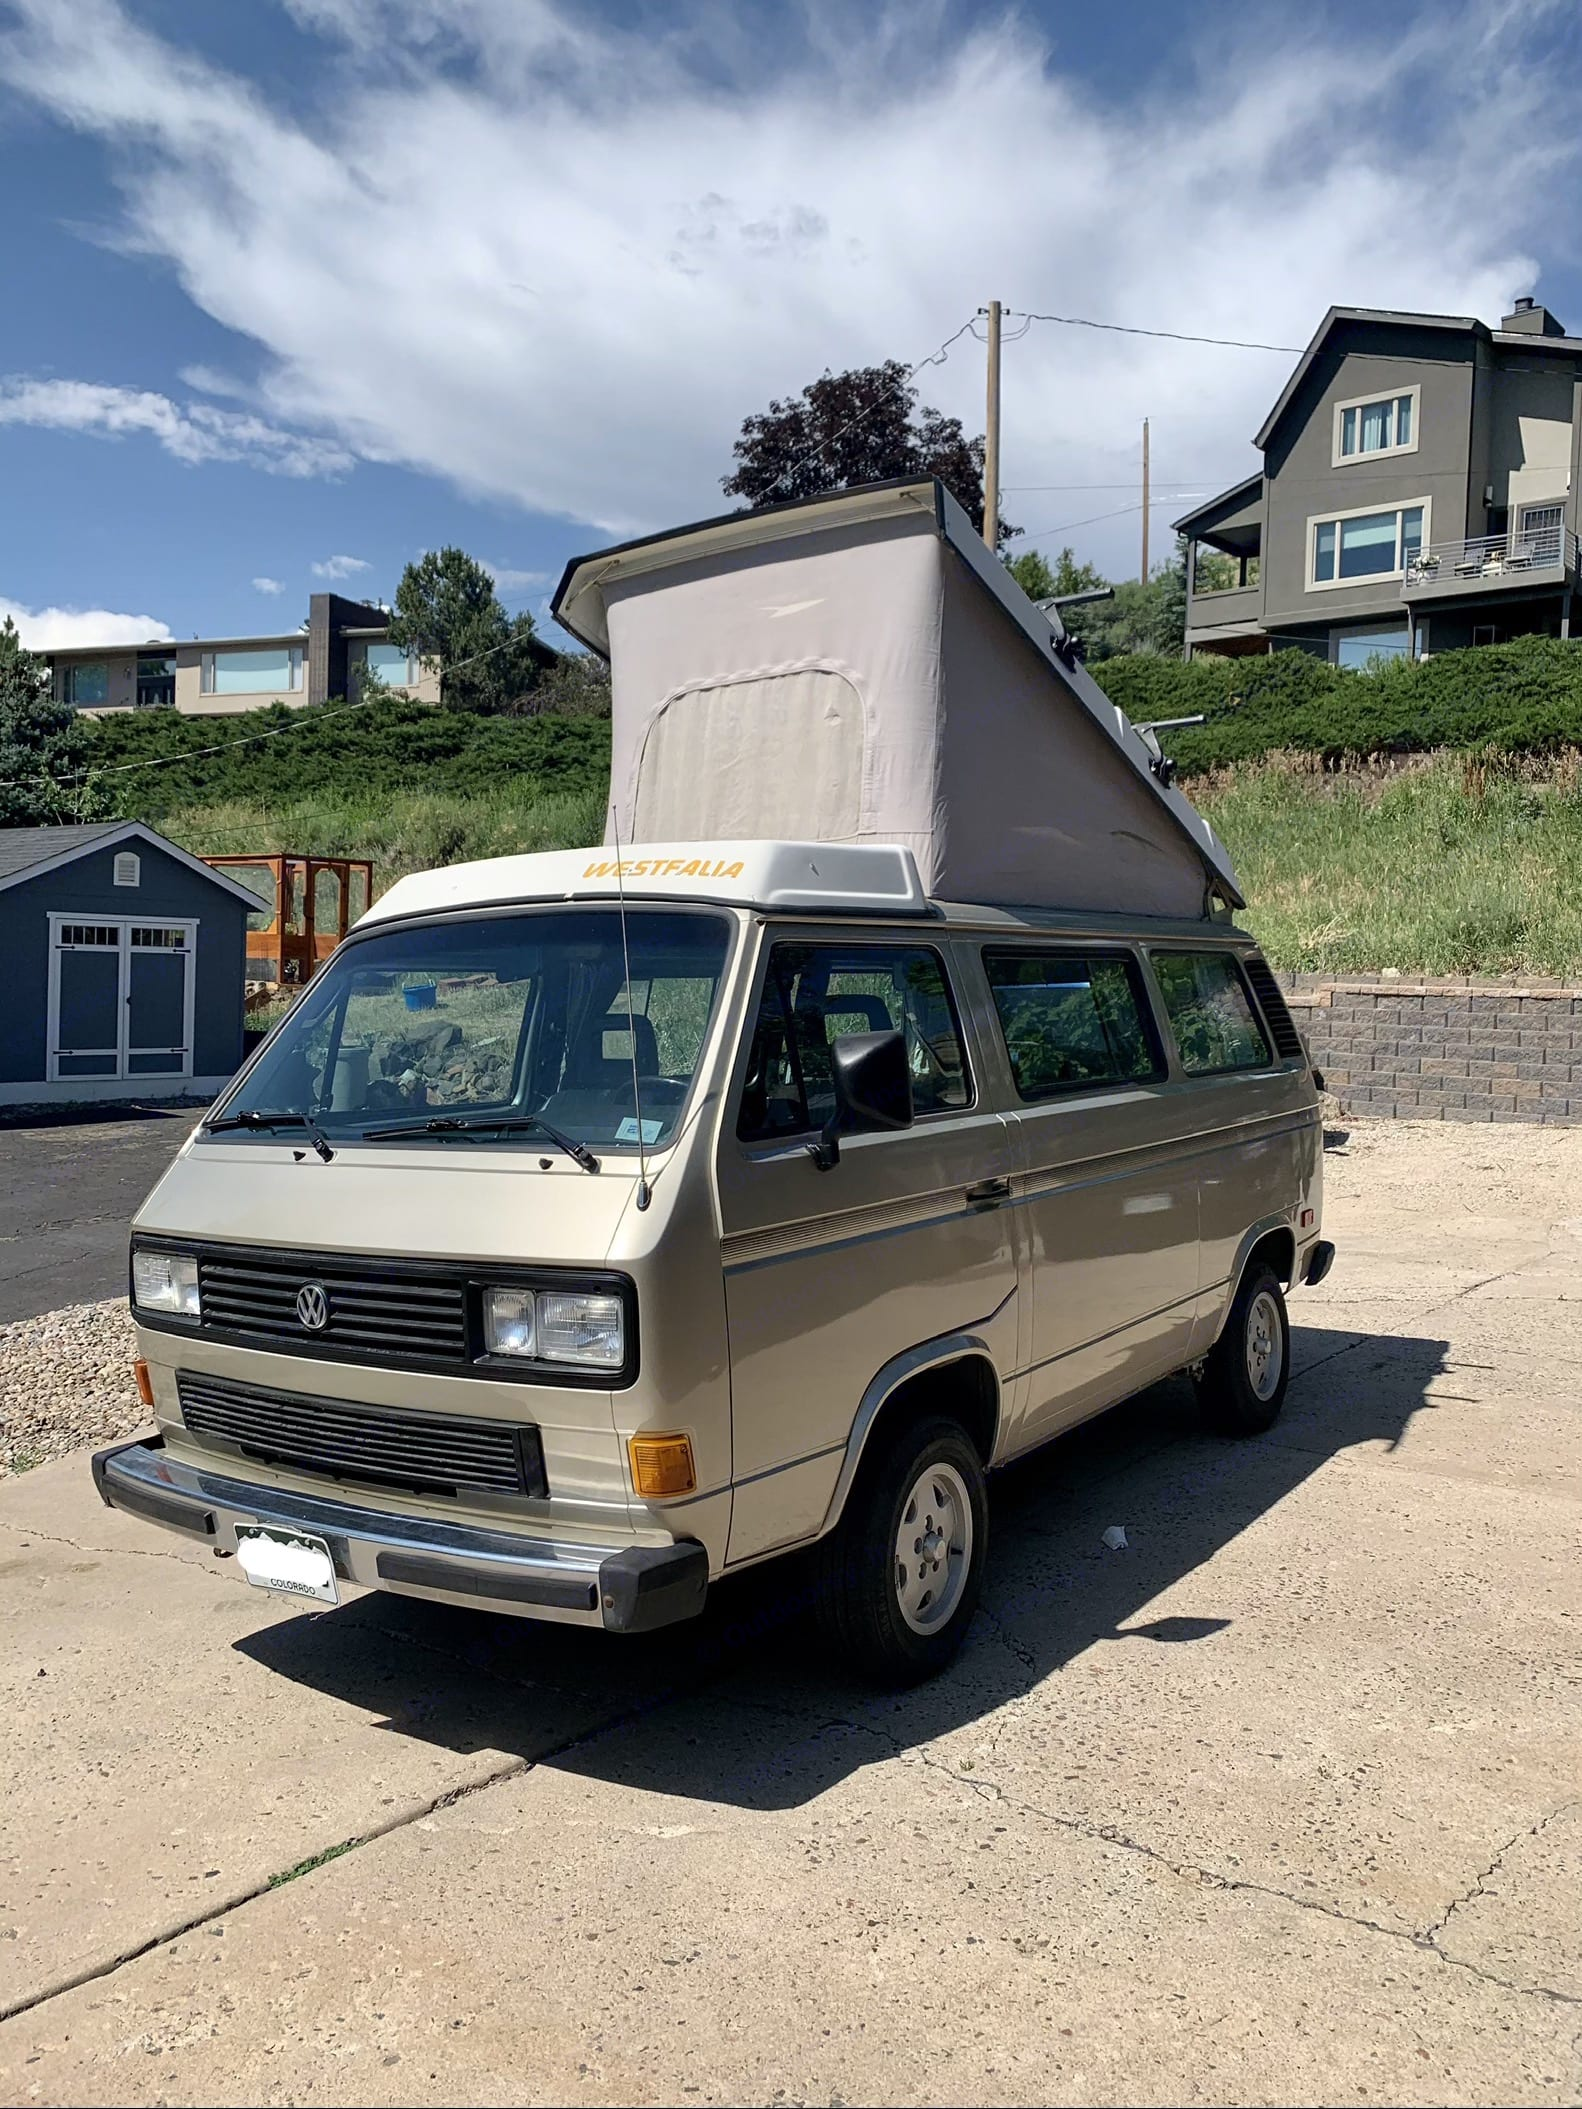 exterior (front) with popped camper top. Volkswagen Westfalia 1987